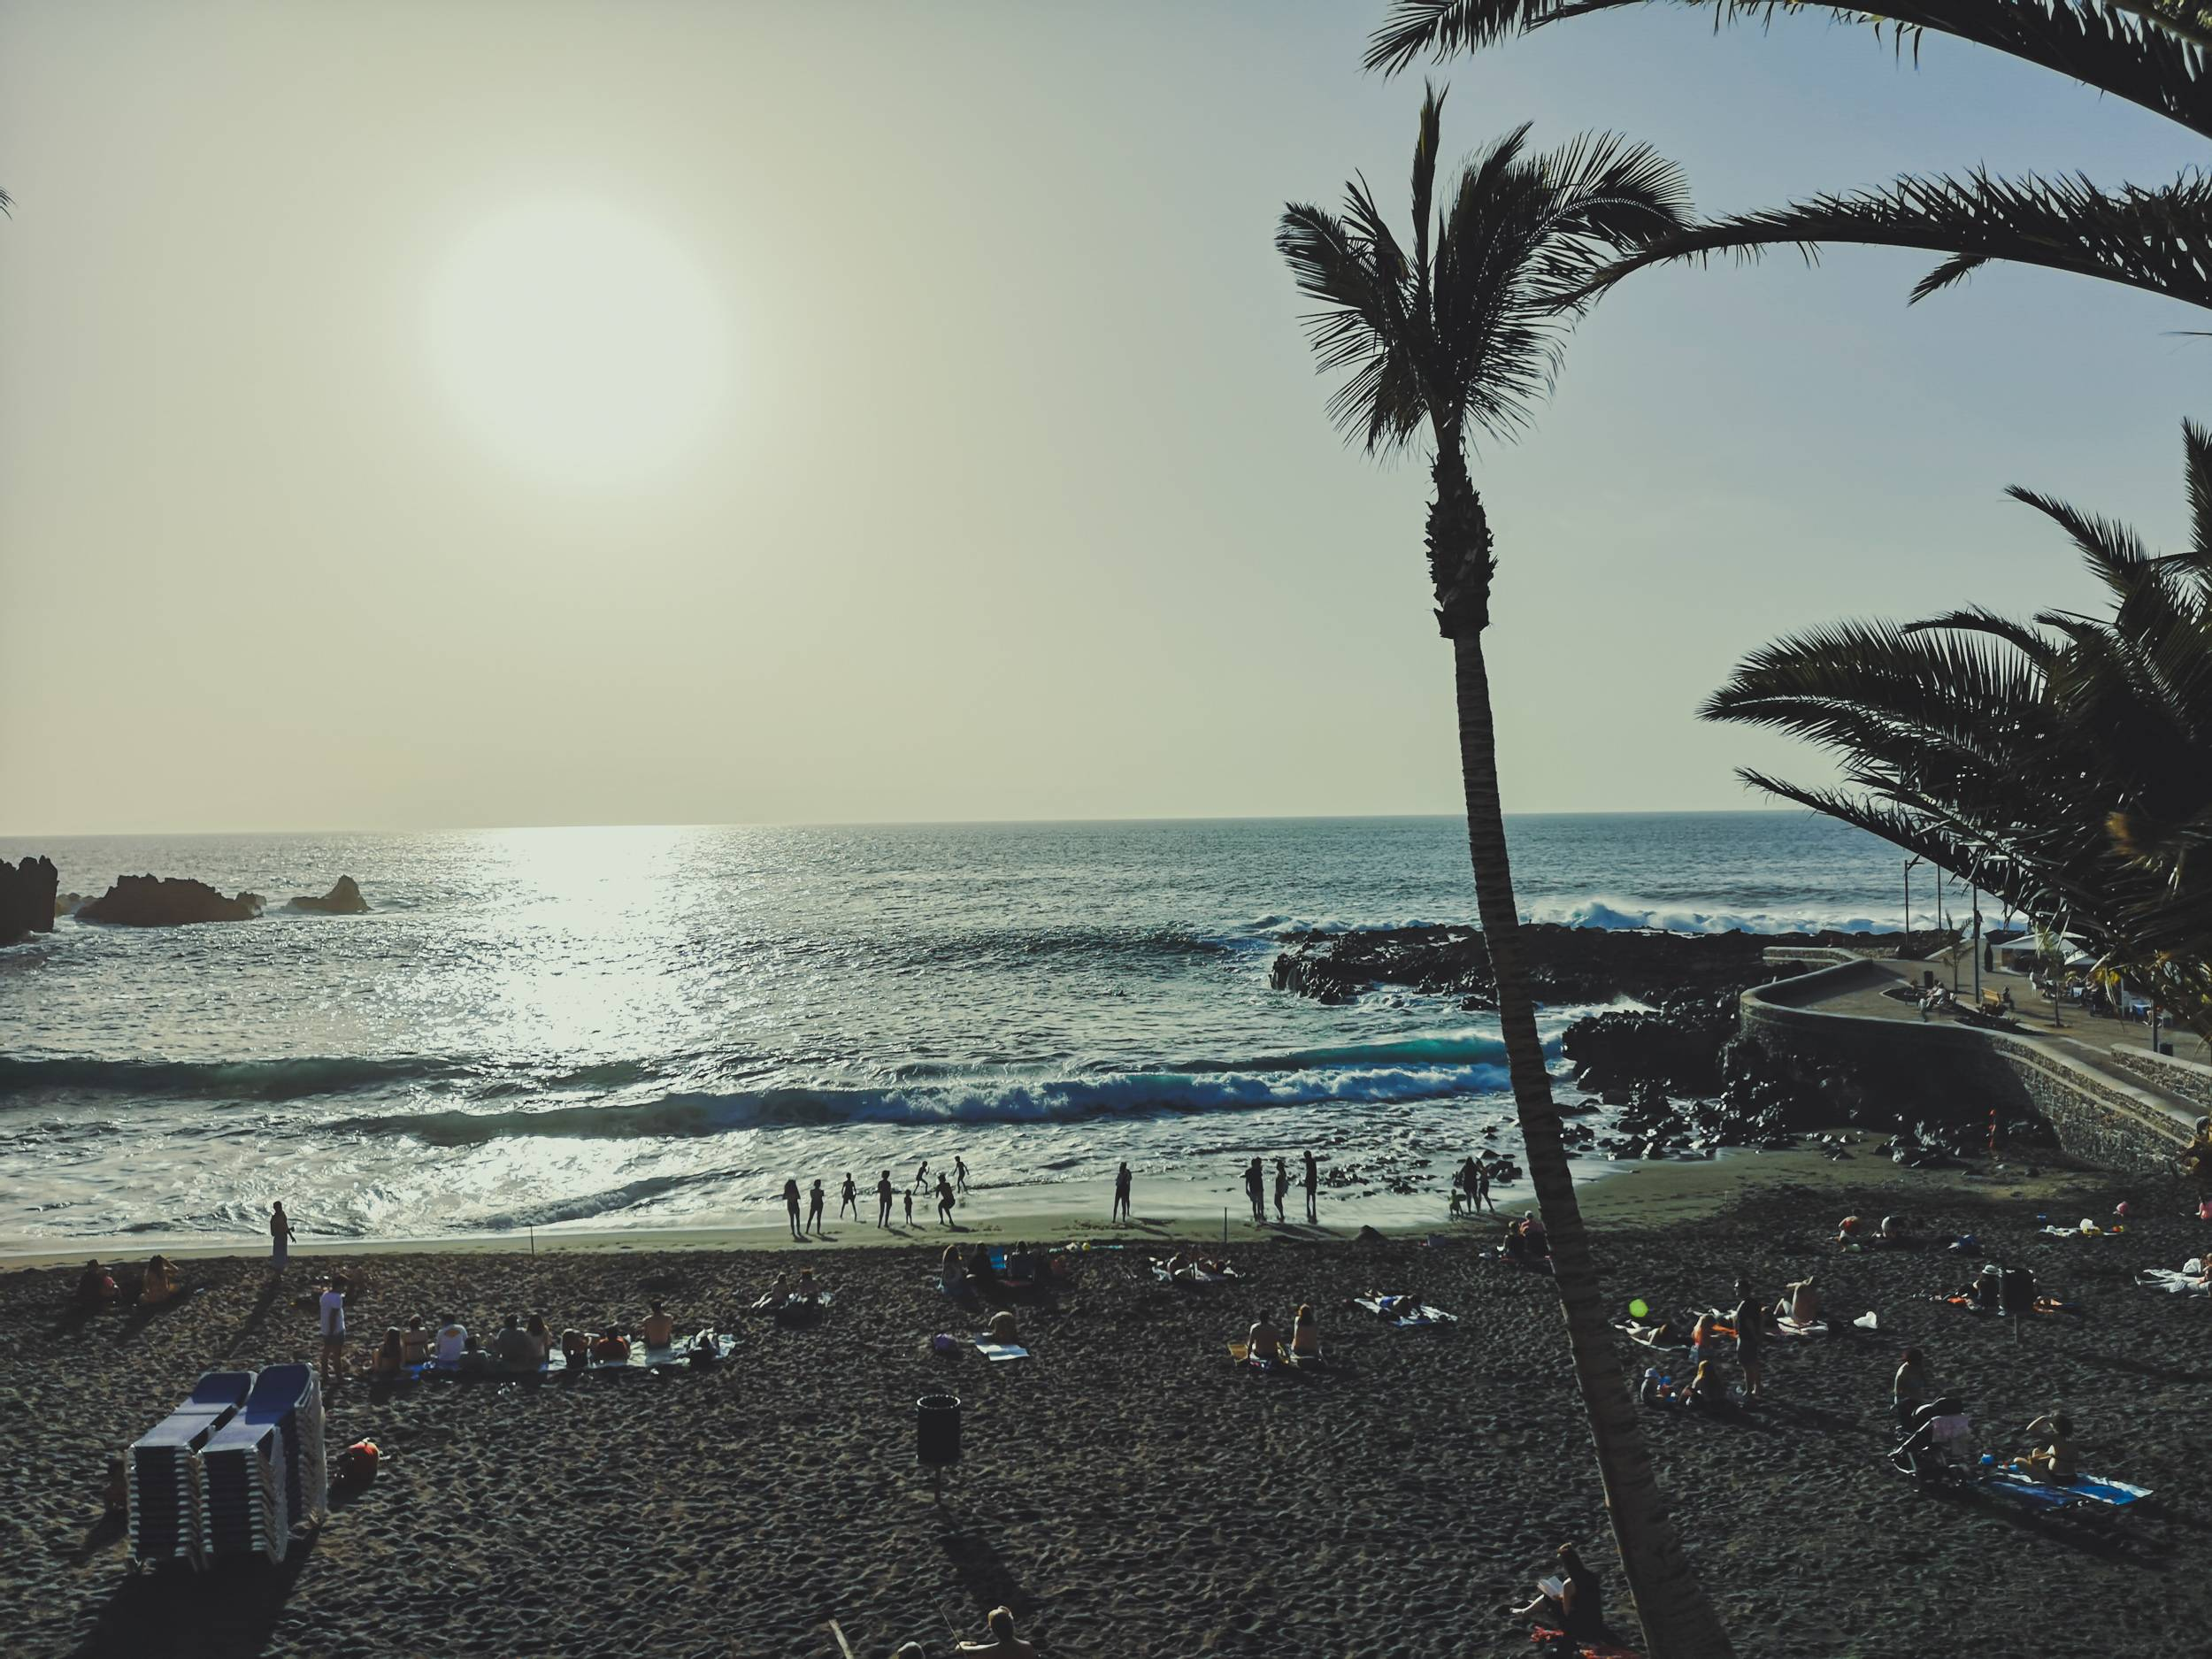 Most of the beaches in Tenerife has its sand colored black by Teide volcano. Photo by Alis Monte [CC BY-SA 4.0], via Connecting the Dots